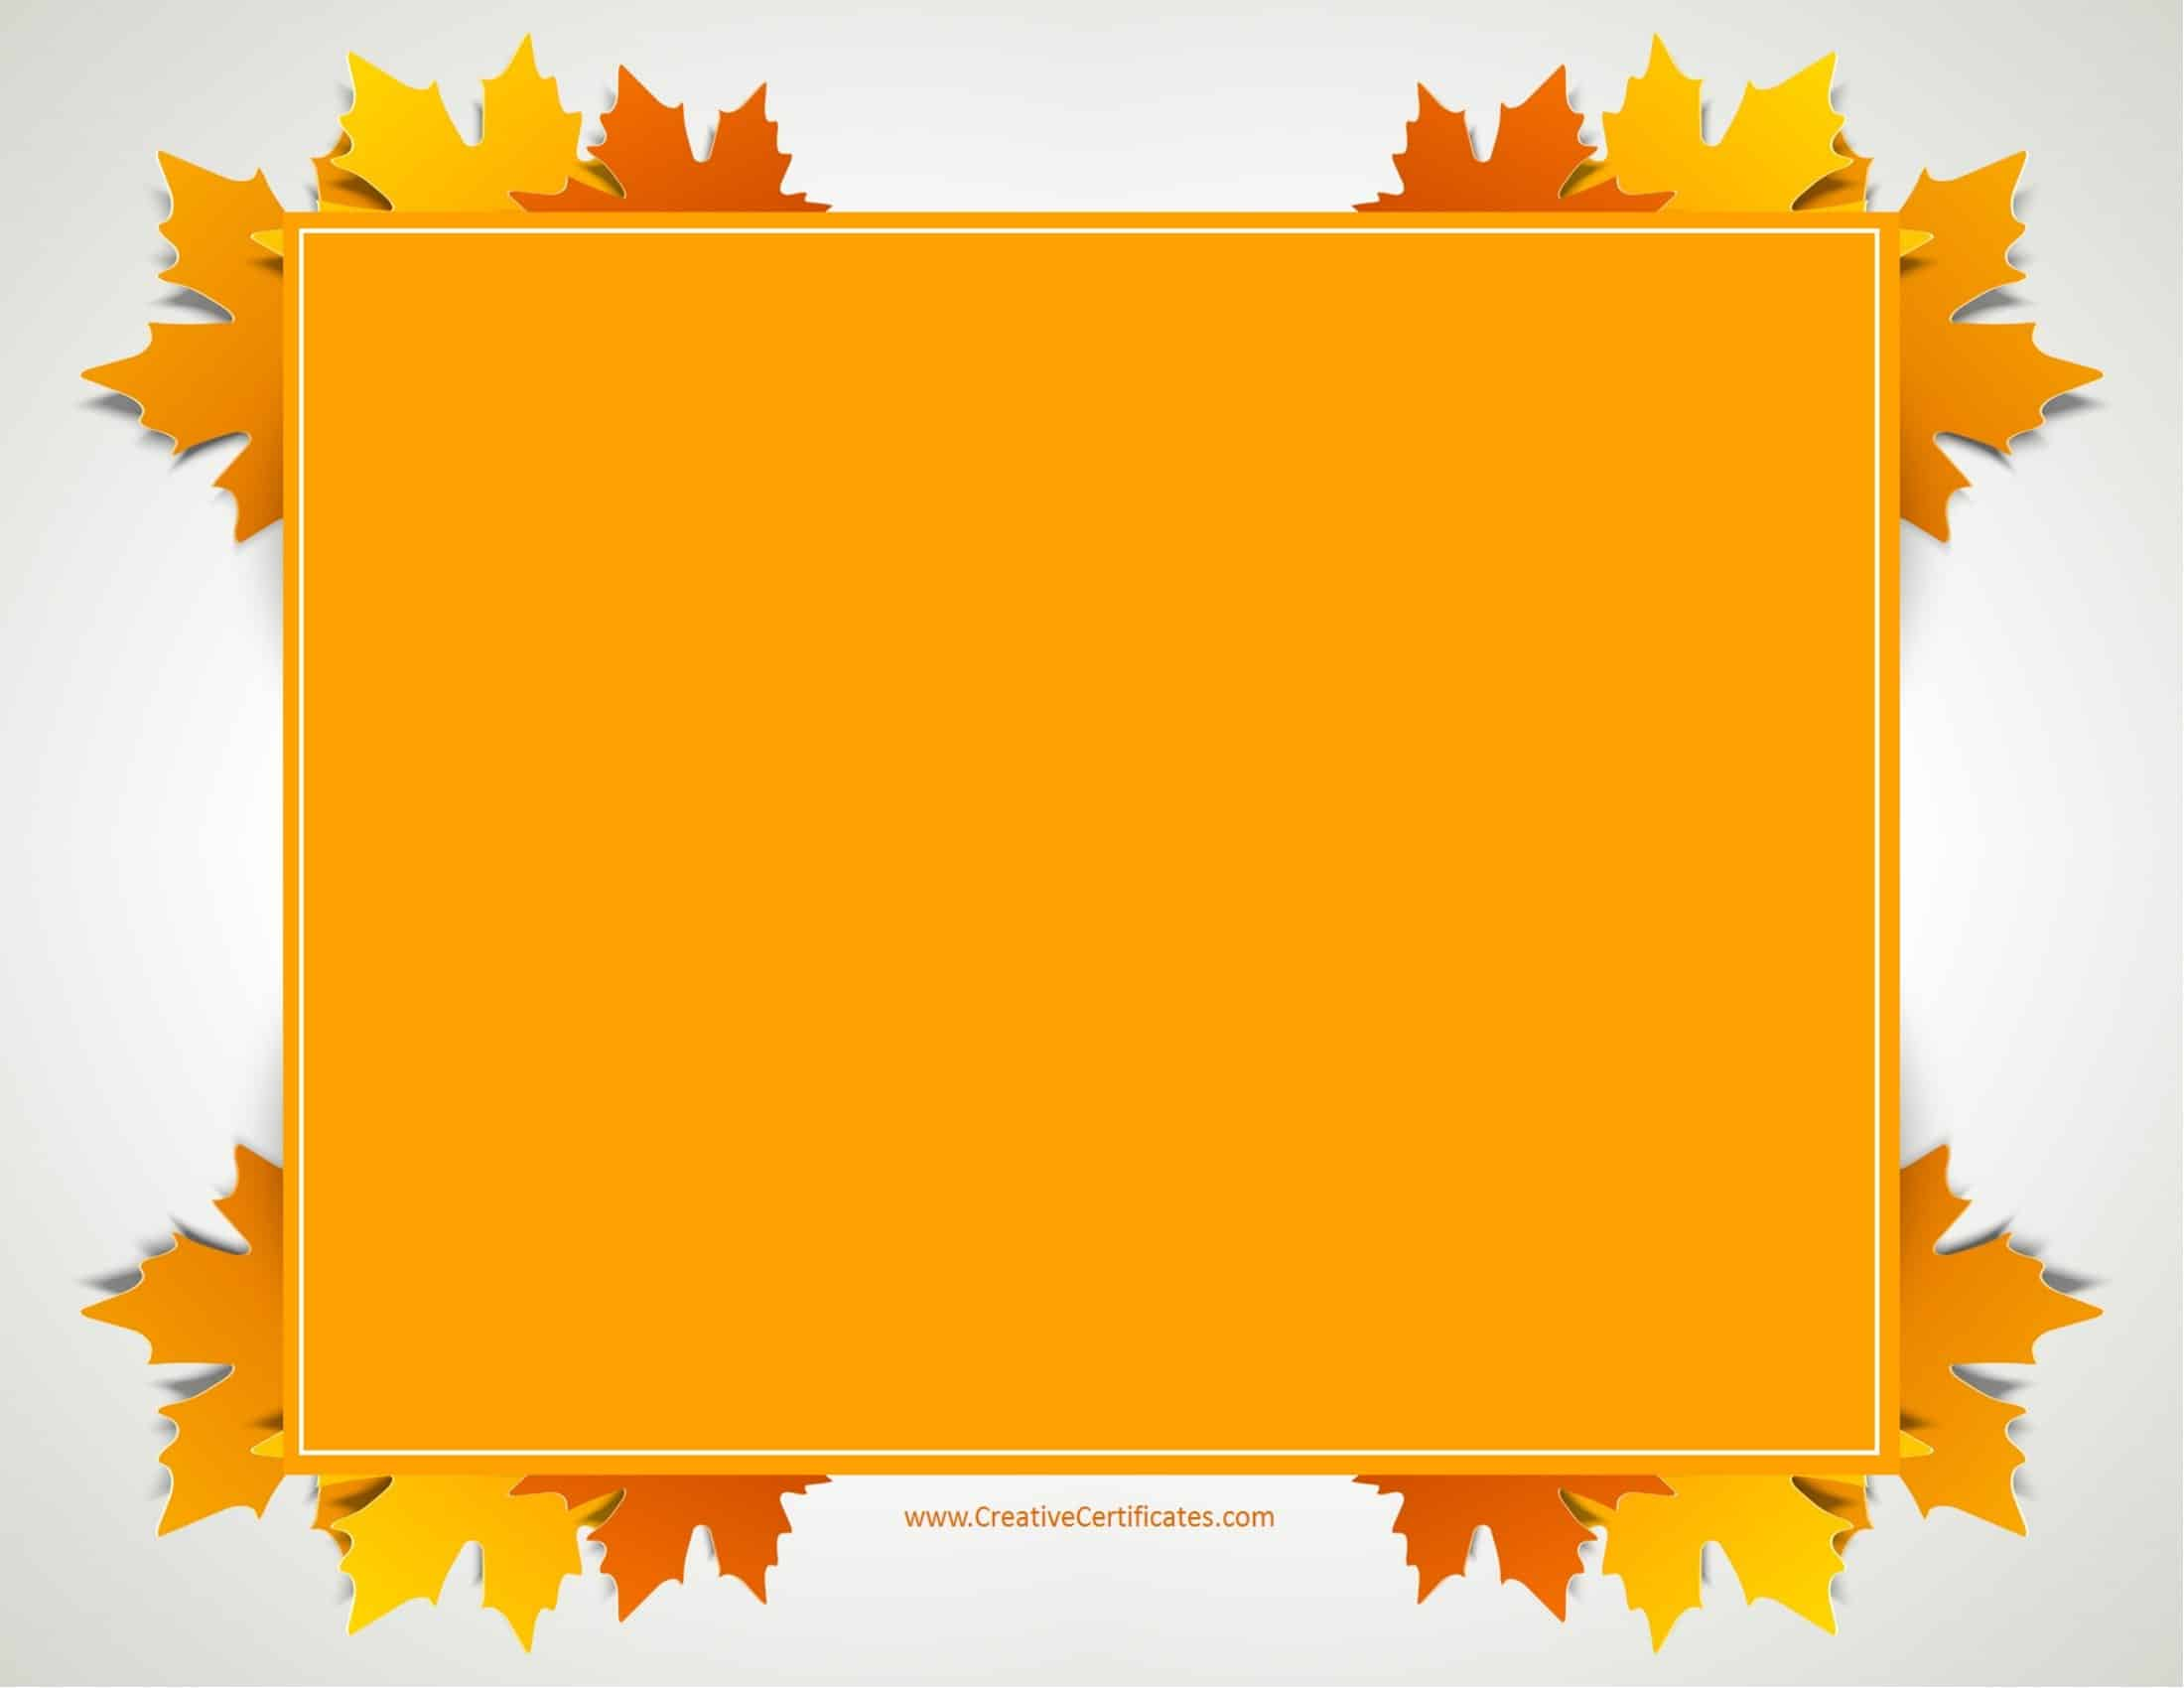 Free Thanksgiving Border Templates - Customizable & Printable